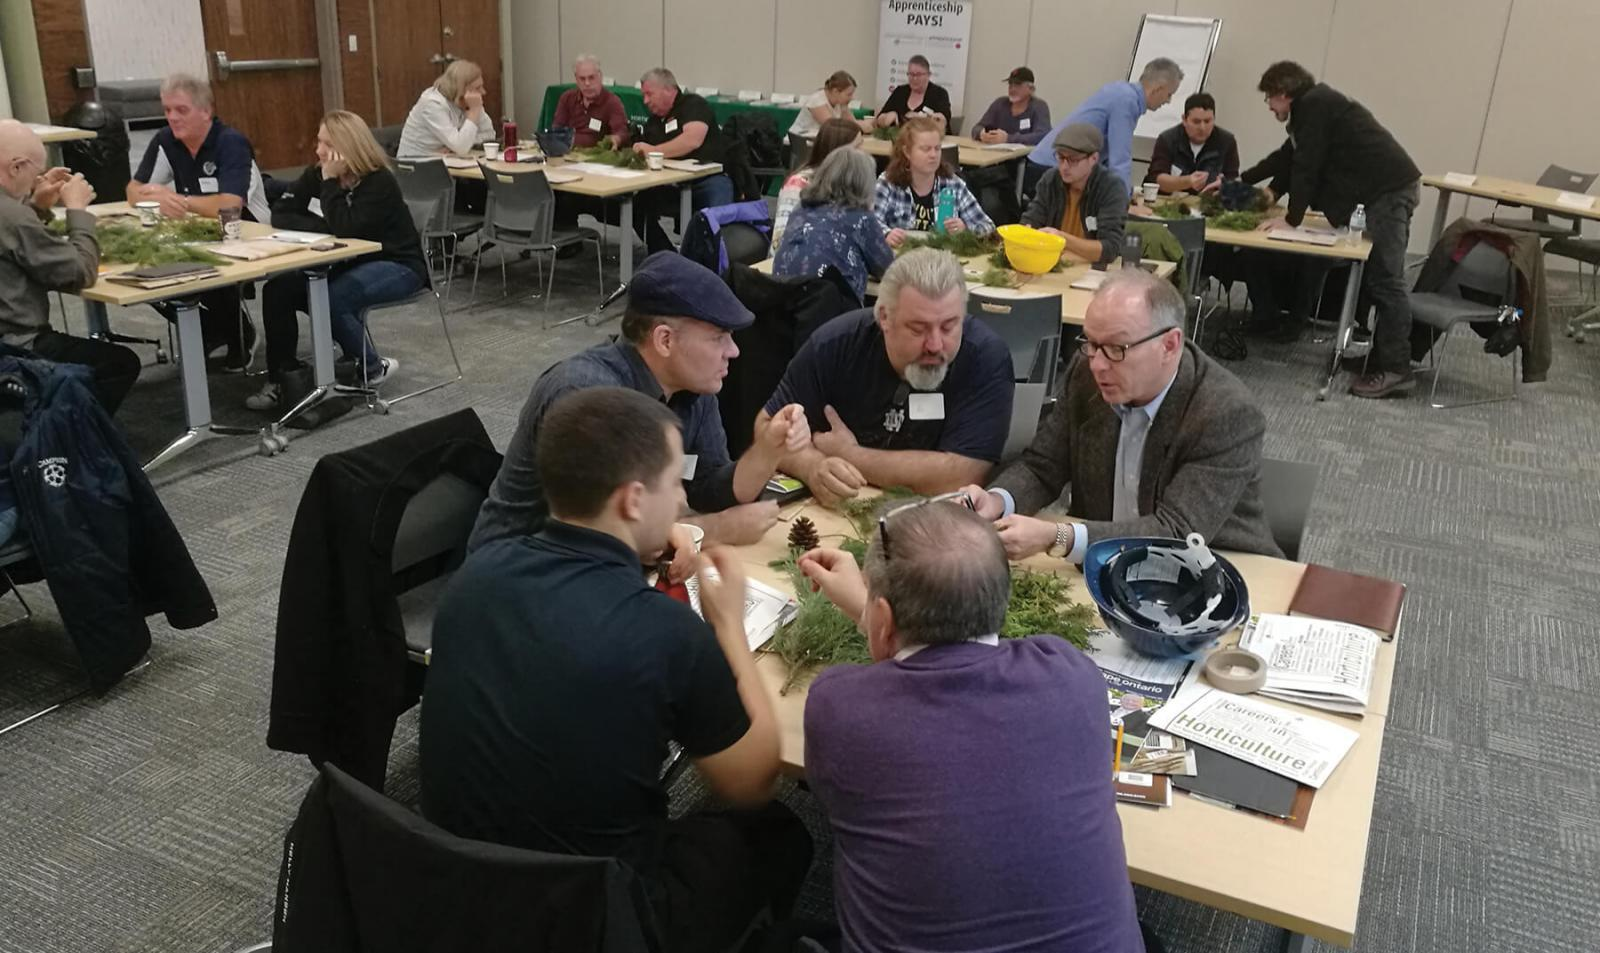 Educators connect to engage youth